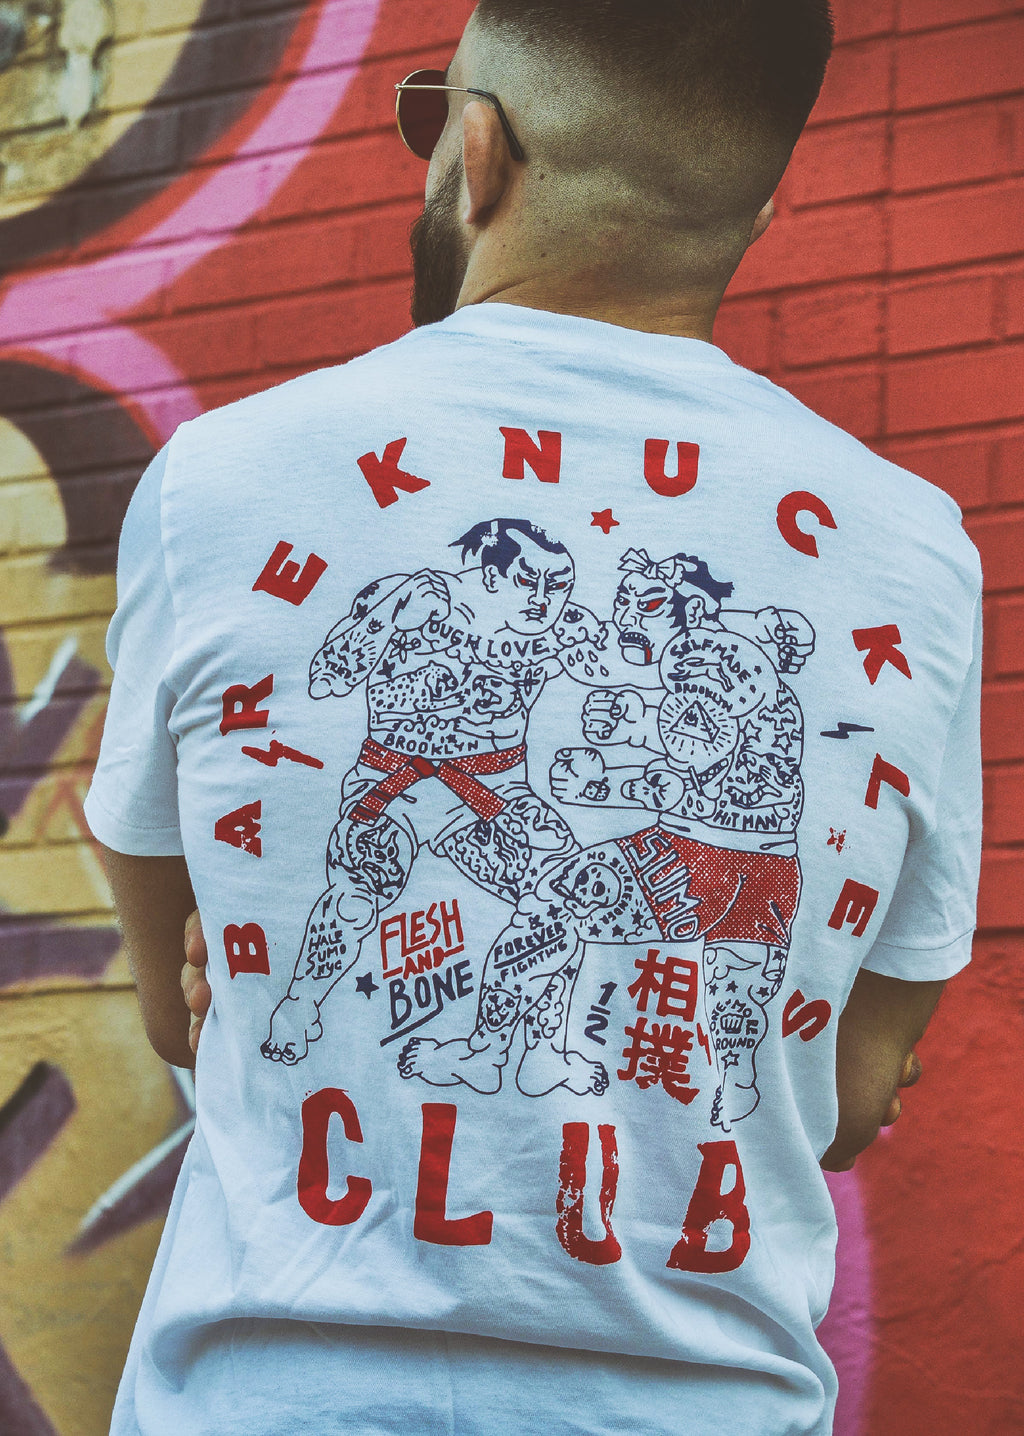 Bareknuckles Club Tee